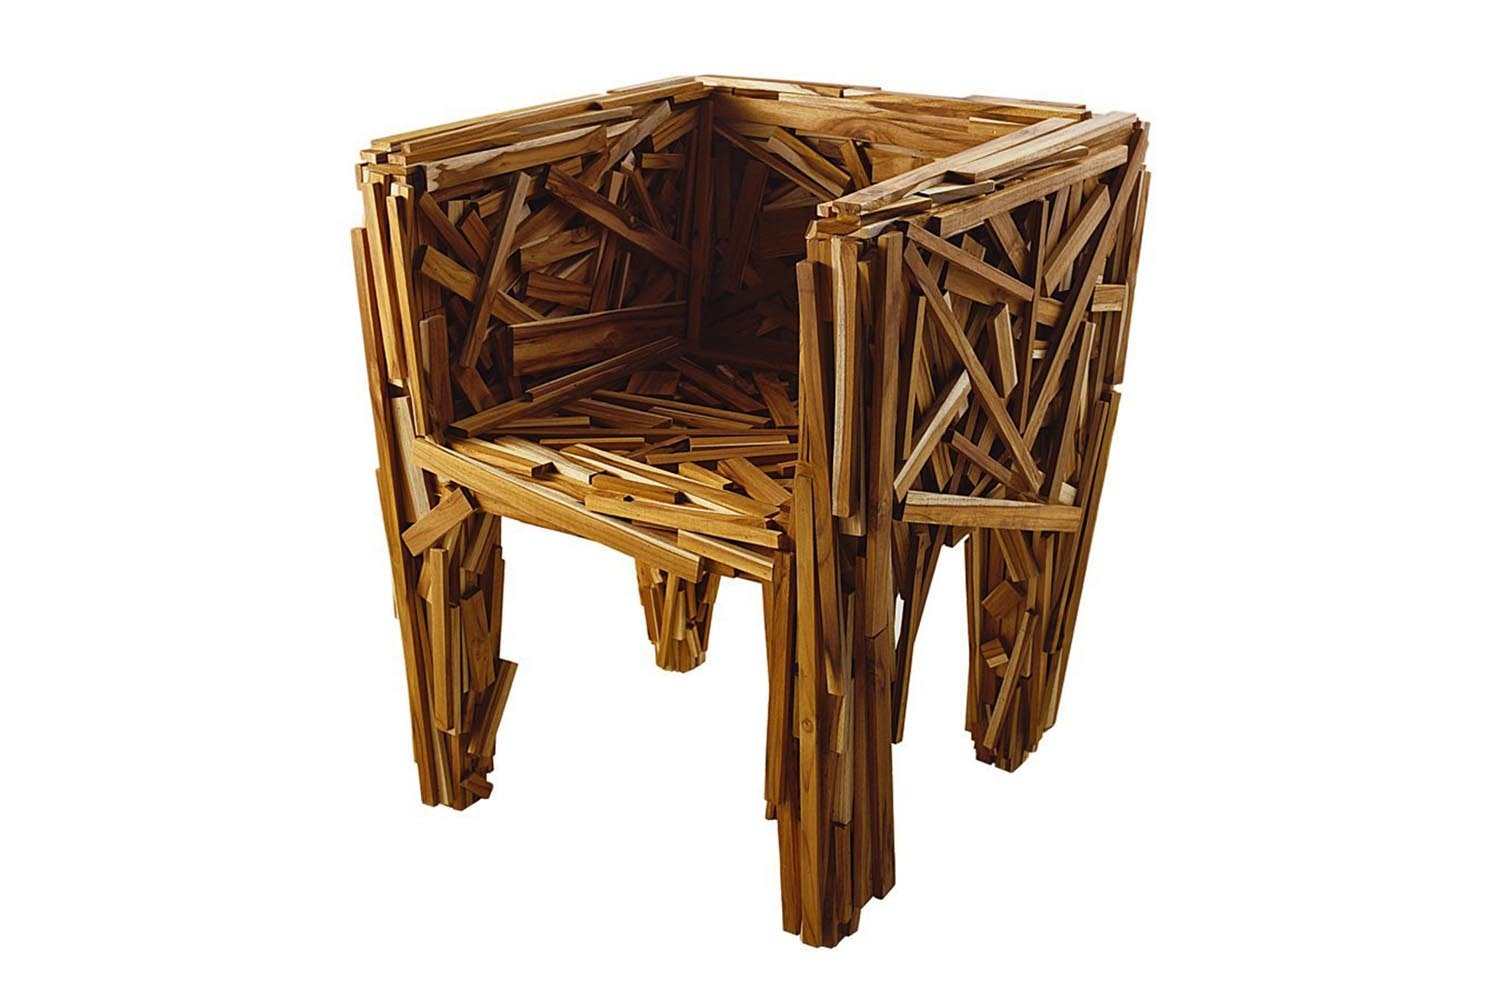 Favela Armchair in Teak by F. e H. Campana for Edra - | Space Furniture